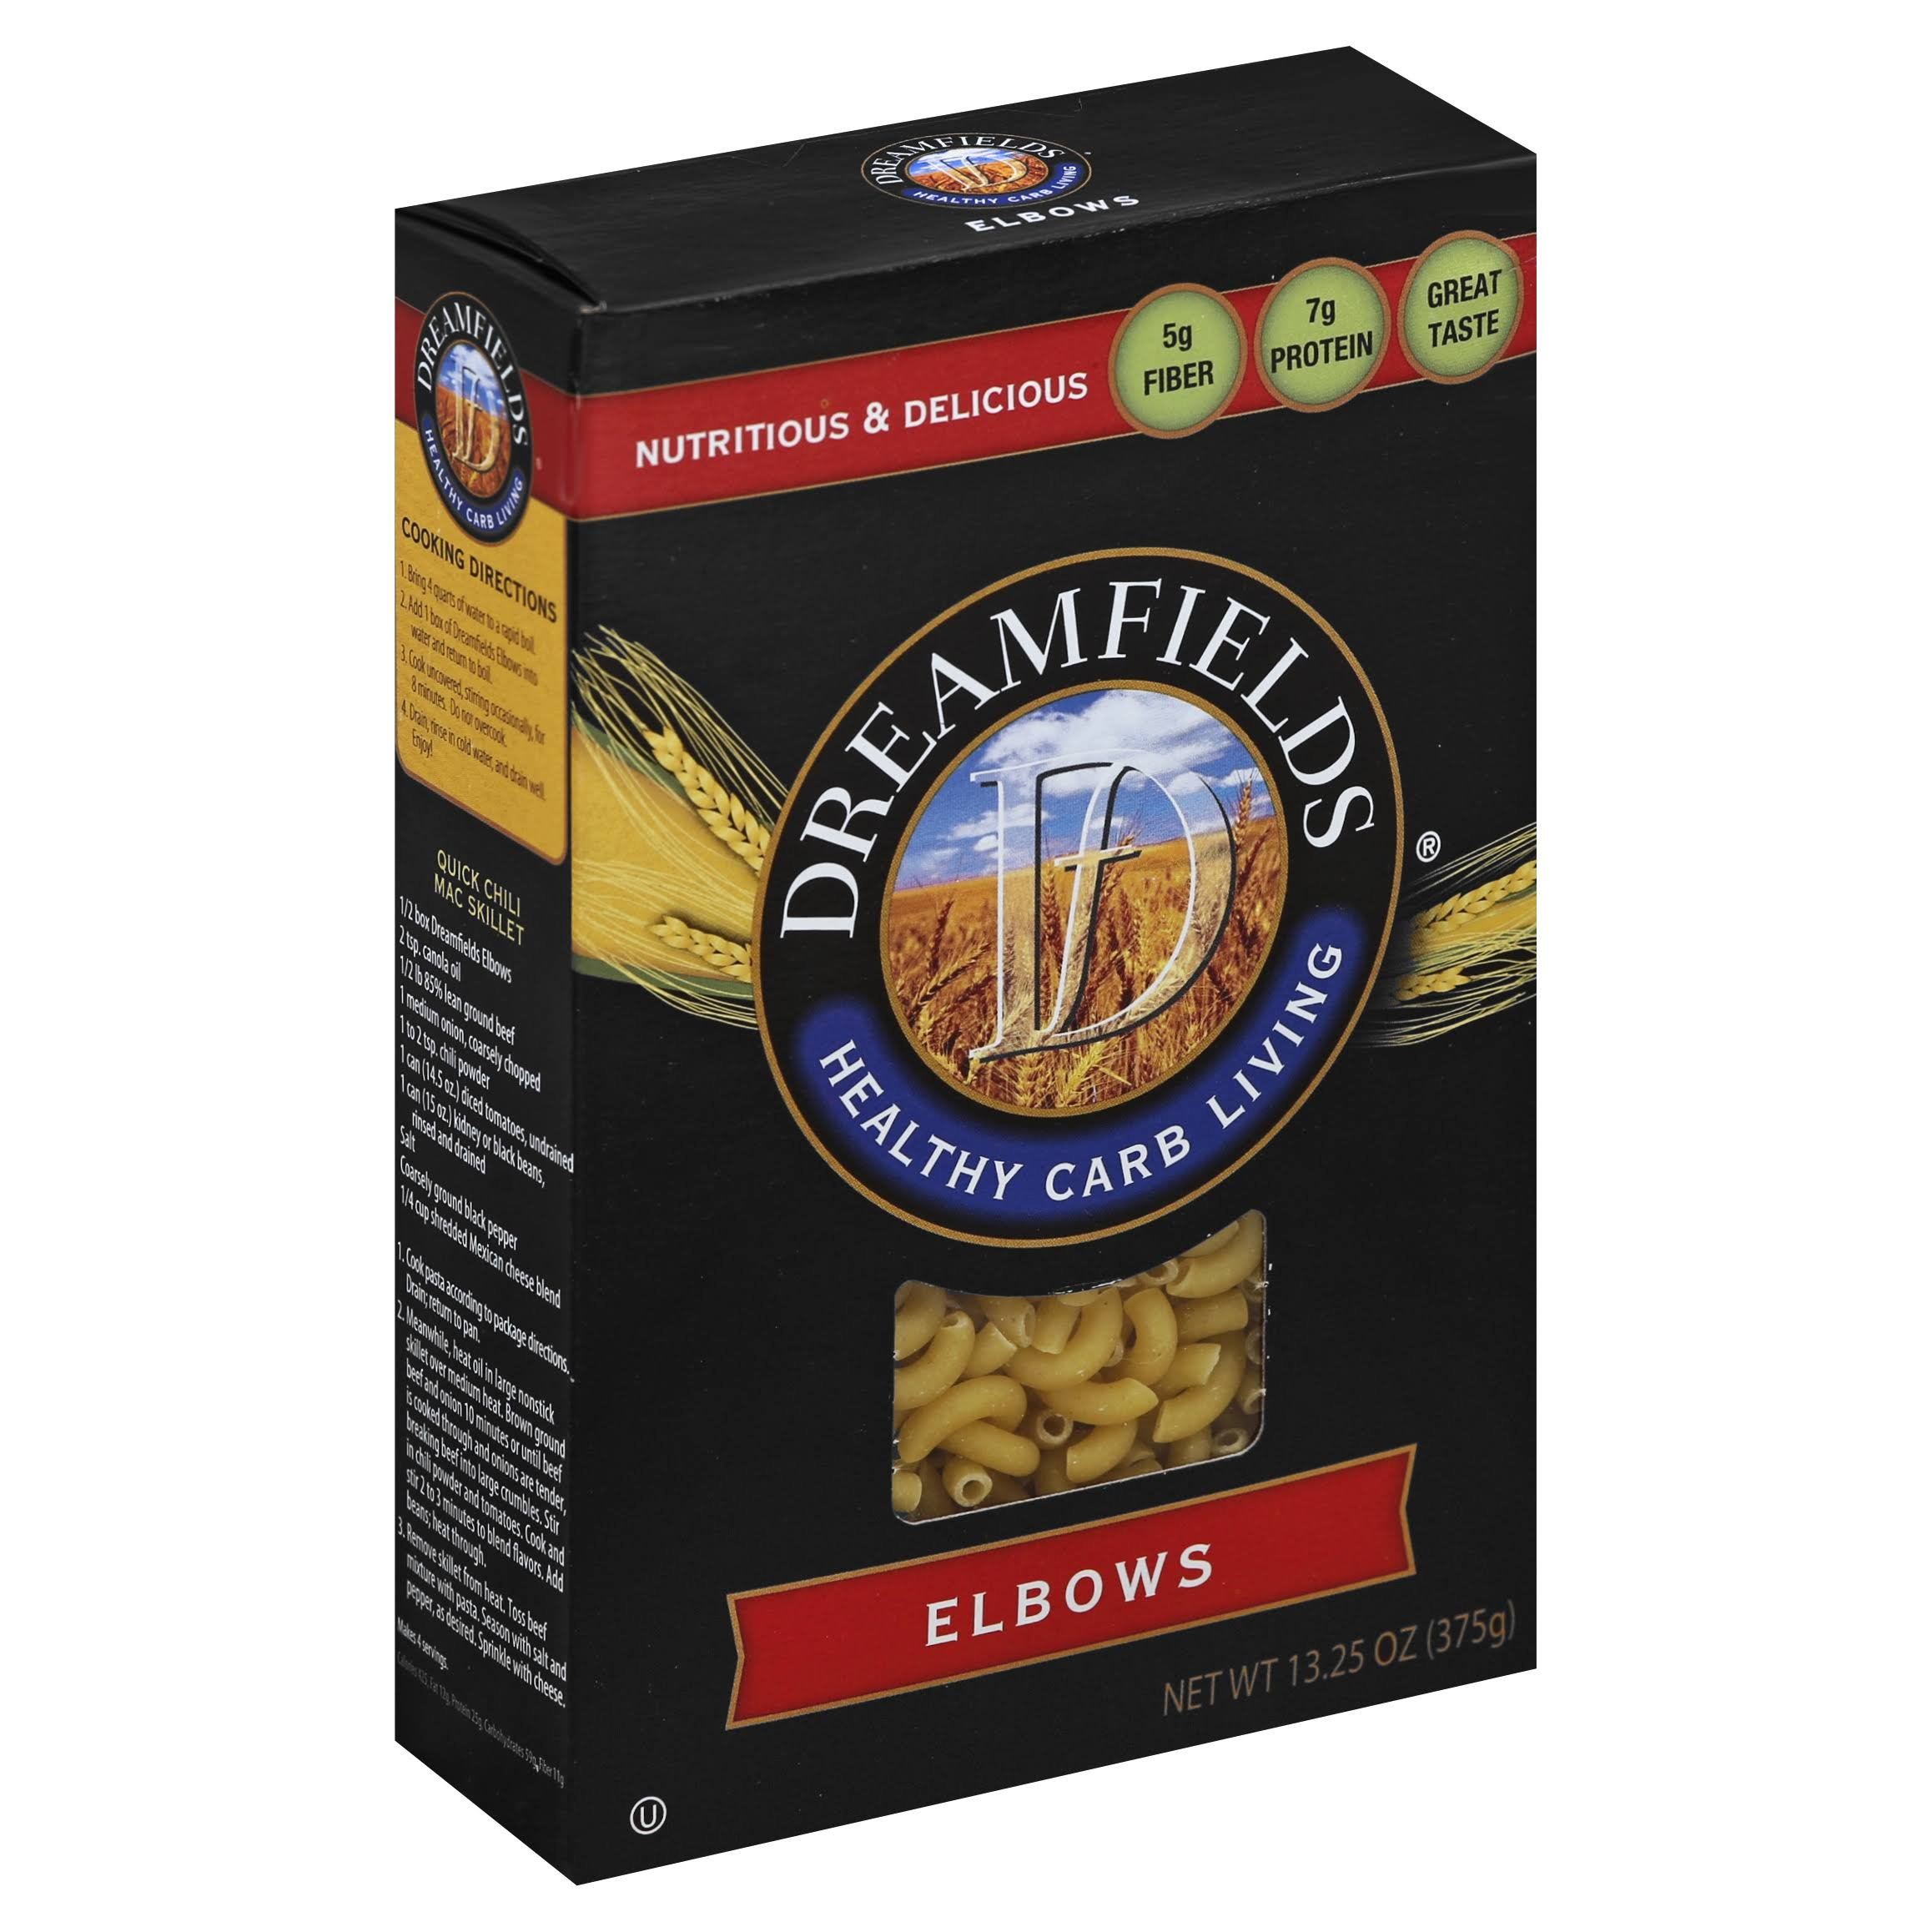 Dreamfields Pasta Healthy Carb Living - Elbow Macaroni, 13.25oz, Pack of 6